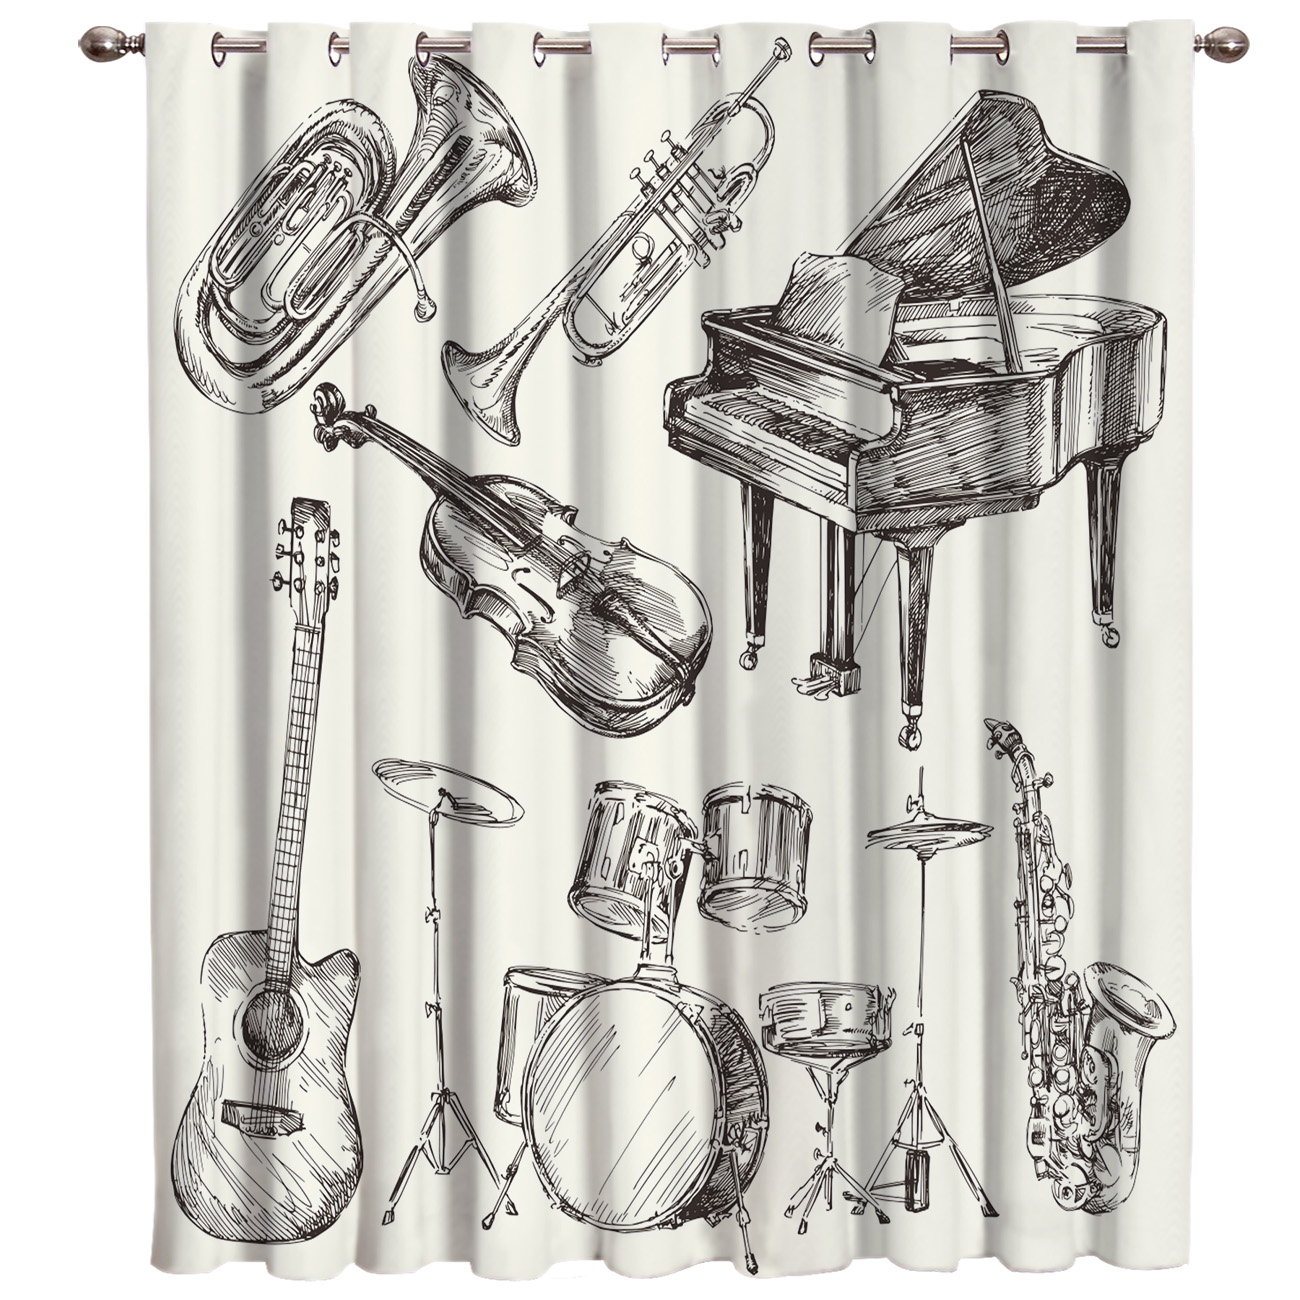 Musical Instrument Window Treatments Curtains Valance Living Room Kitchen Bedroom Fabric Indoor Kids Curtain Panels With Grommet